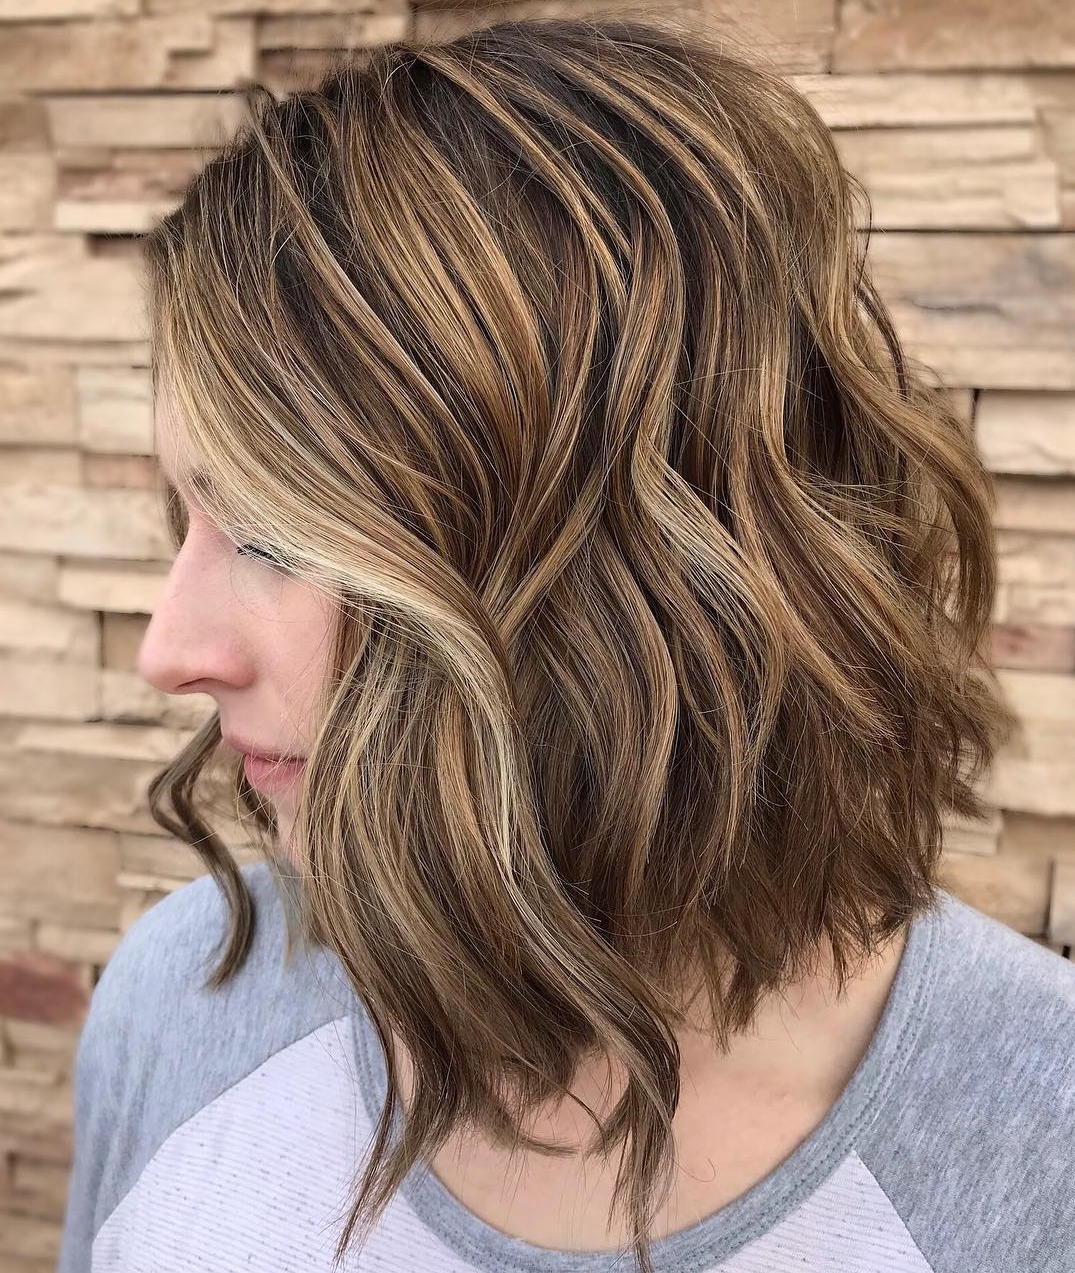 Well Liked Shoulder Length Wavy Layered Hairstyles With Highlights Intended For How To Pull Off Medium Length Haircuts And Hairstyles In (View 8 of 20)